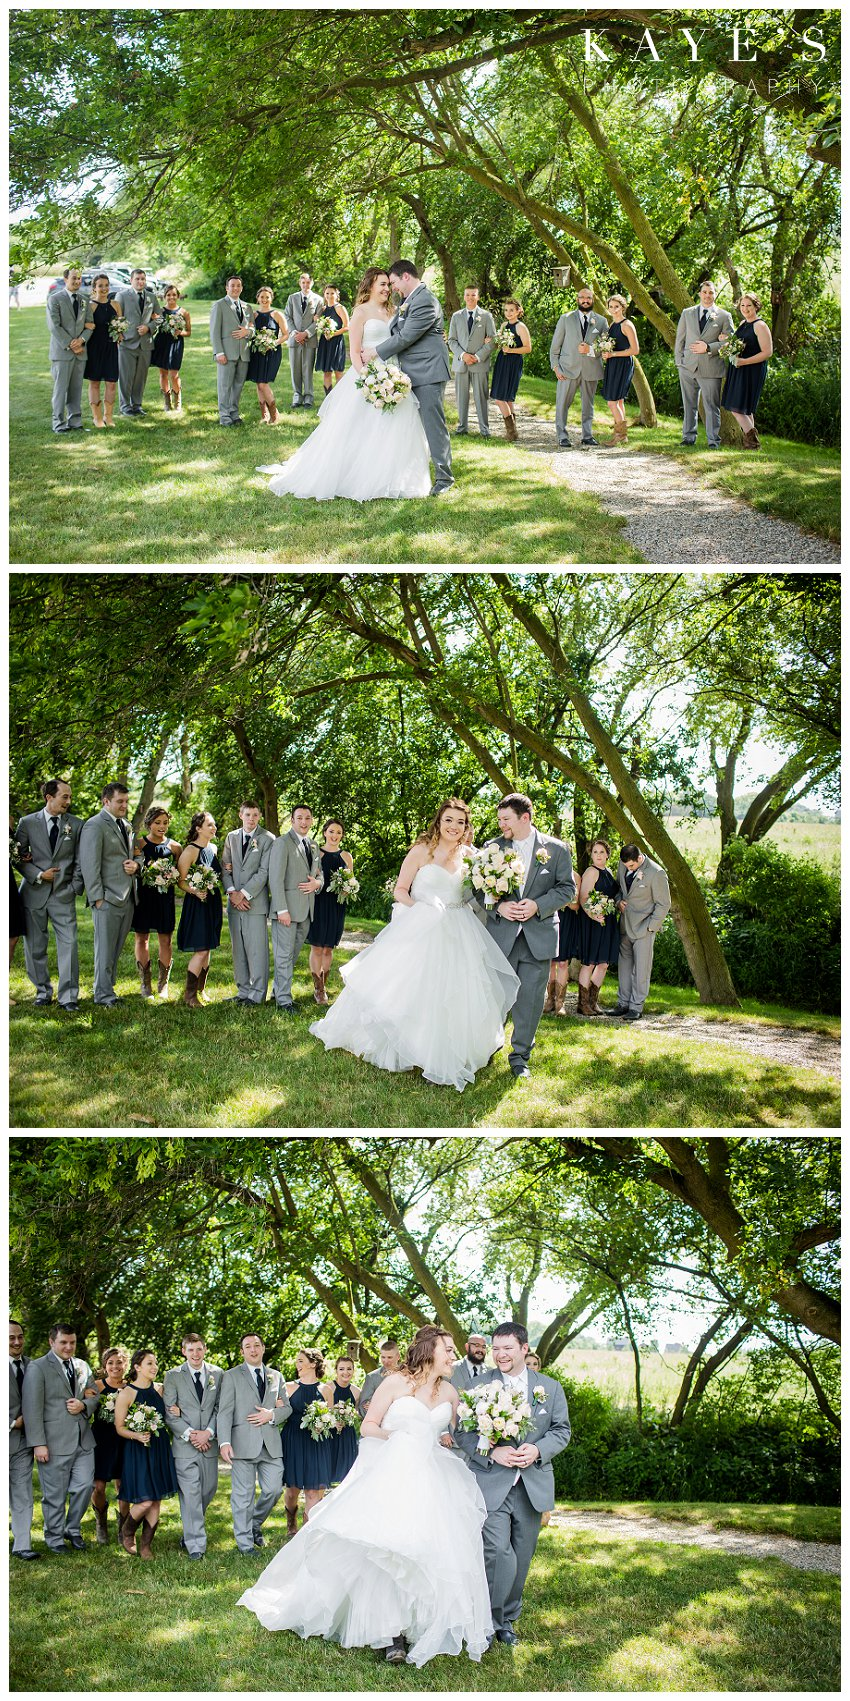 Kayes Photography- howell-michigan-wedding-photographer_0885.jpg